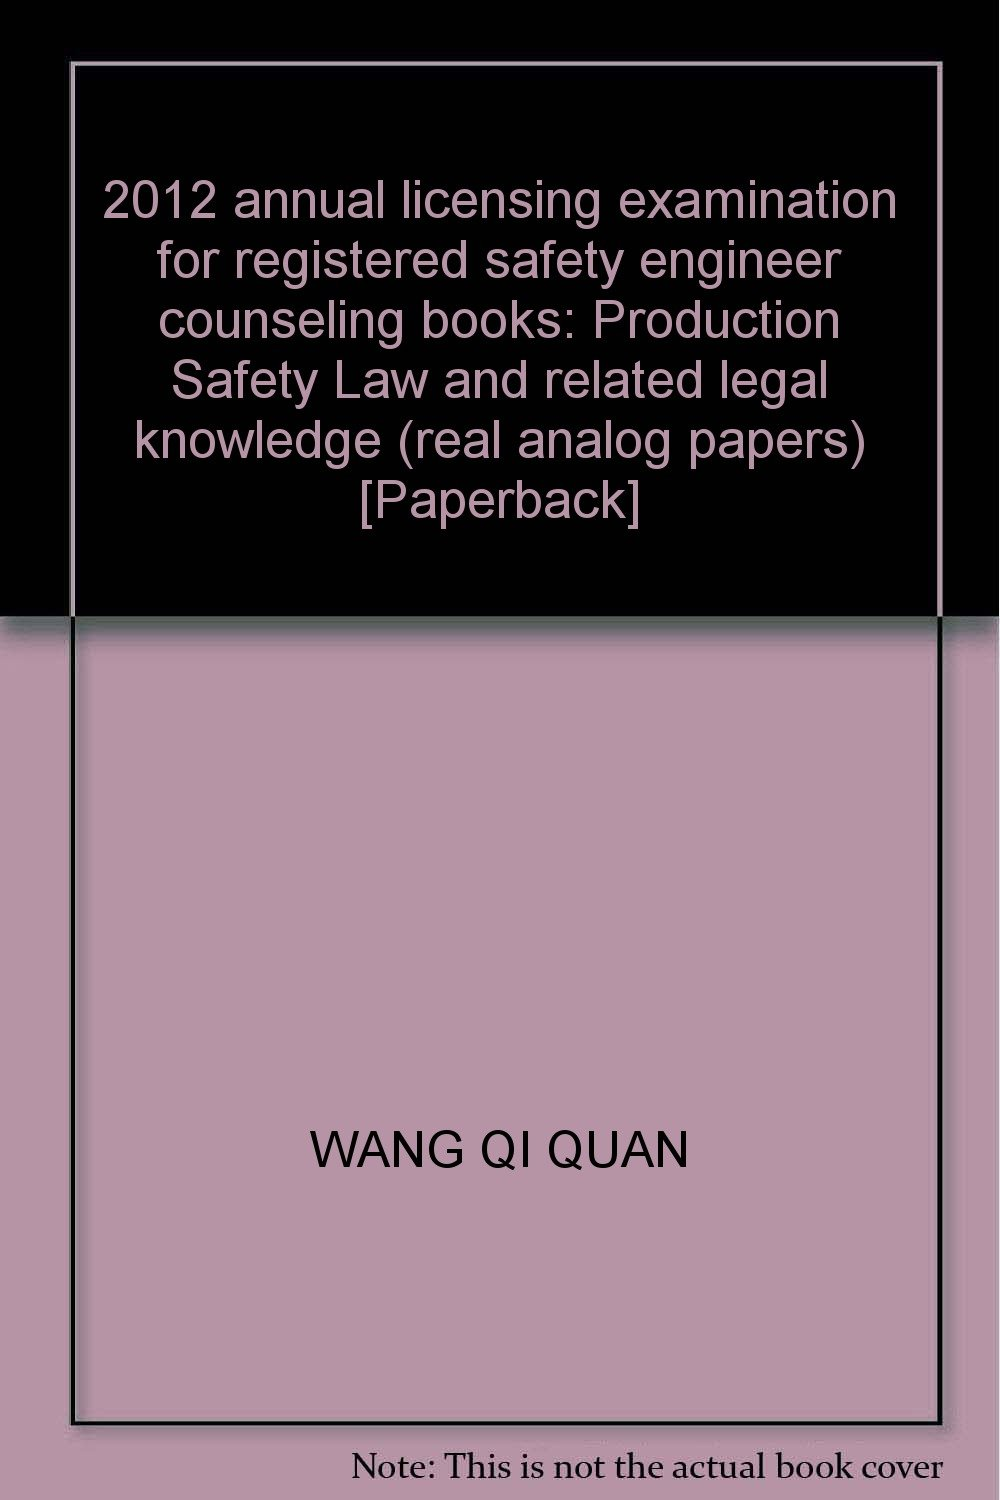 2012 annual licensing examination for registered safety engineer counseling books: Production Safety Law and related legal knowledge (real analog papers) [Paperback] pdf epub